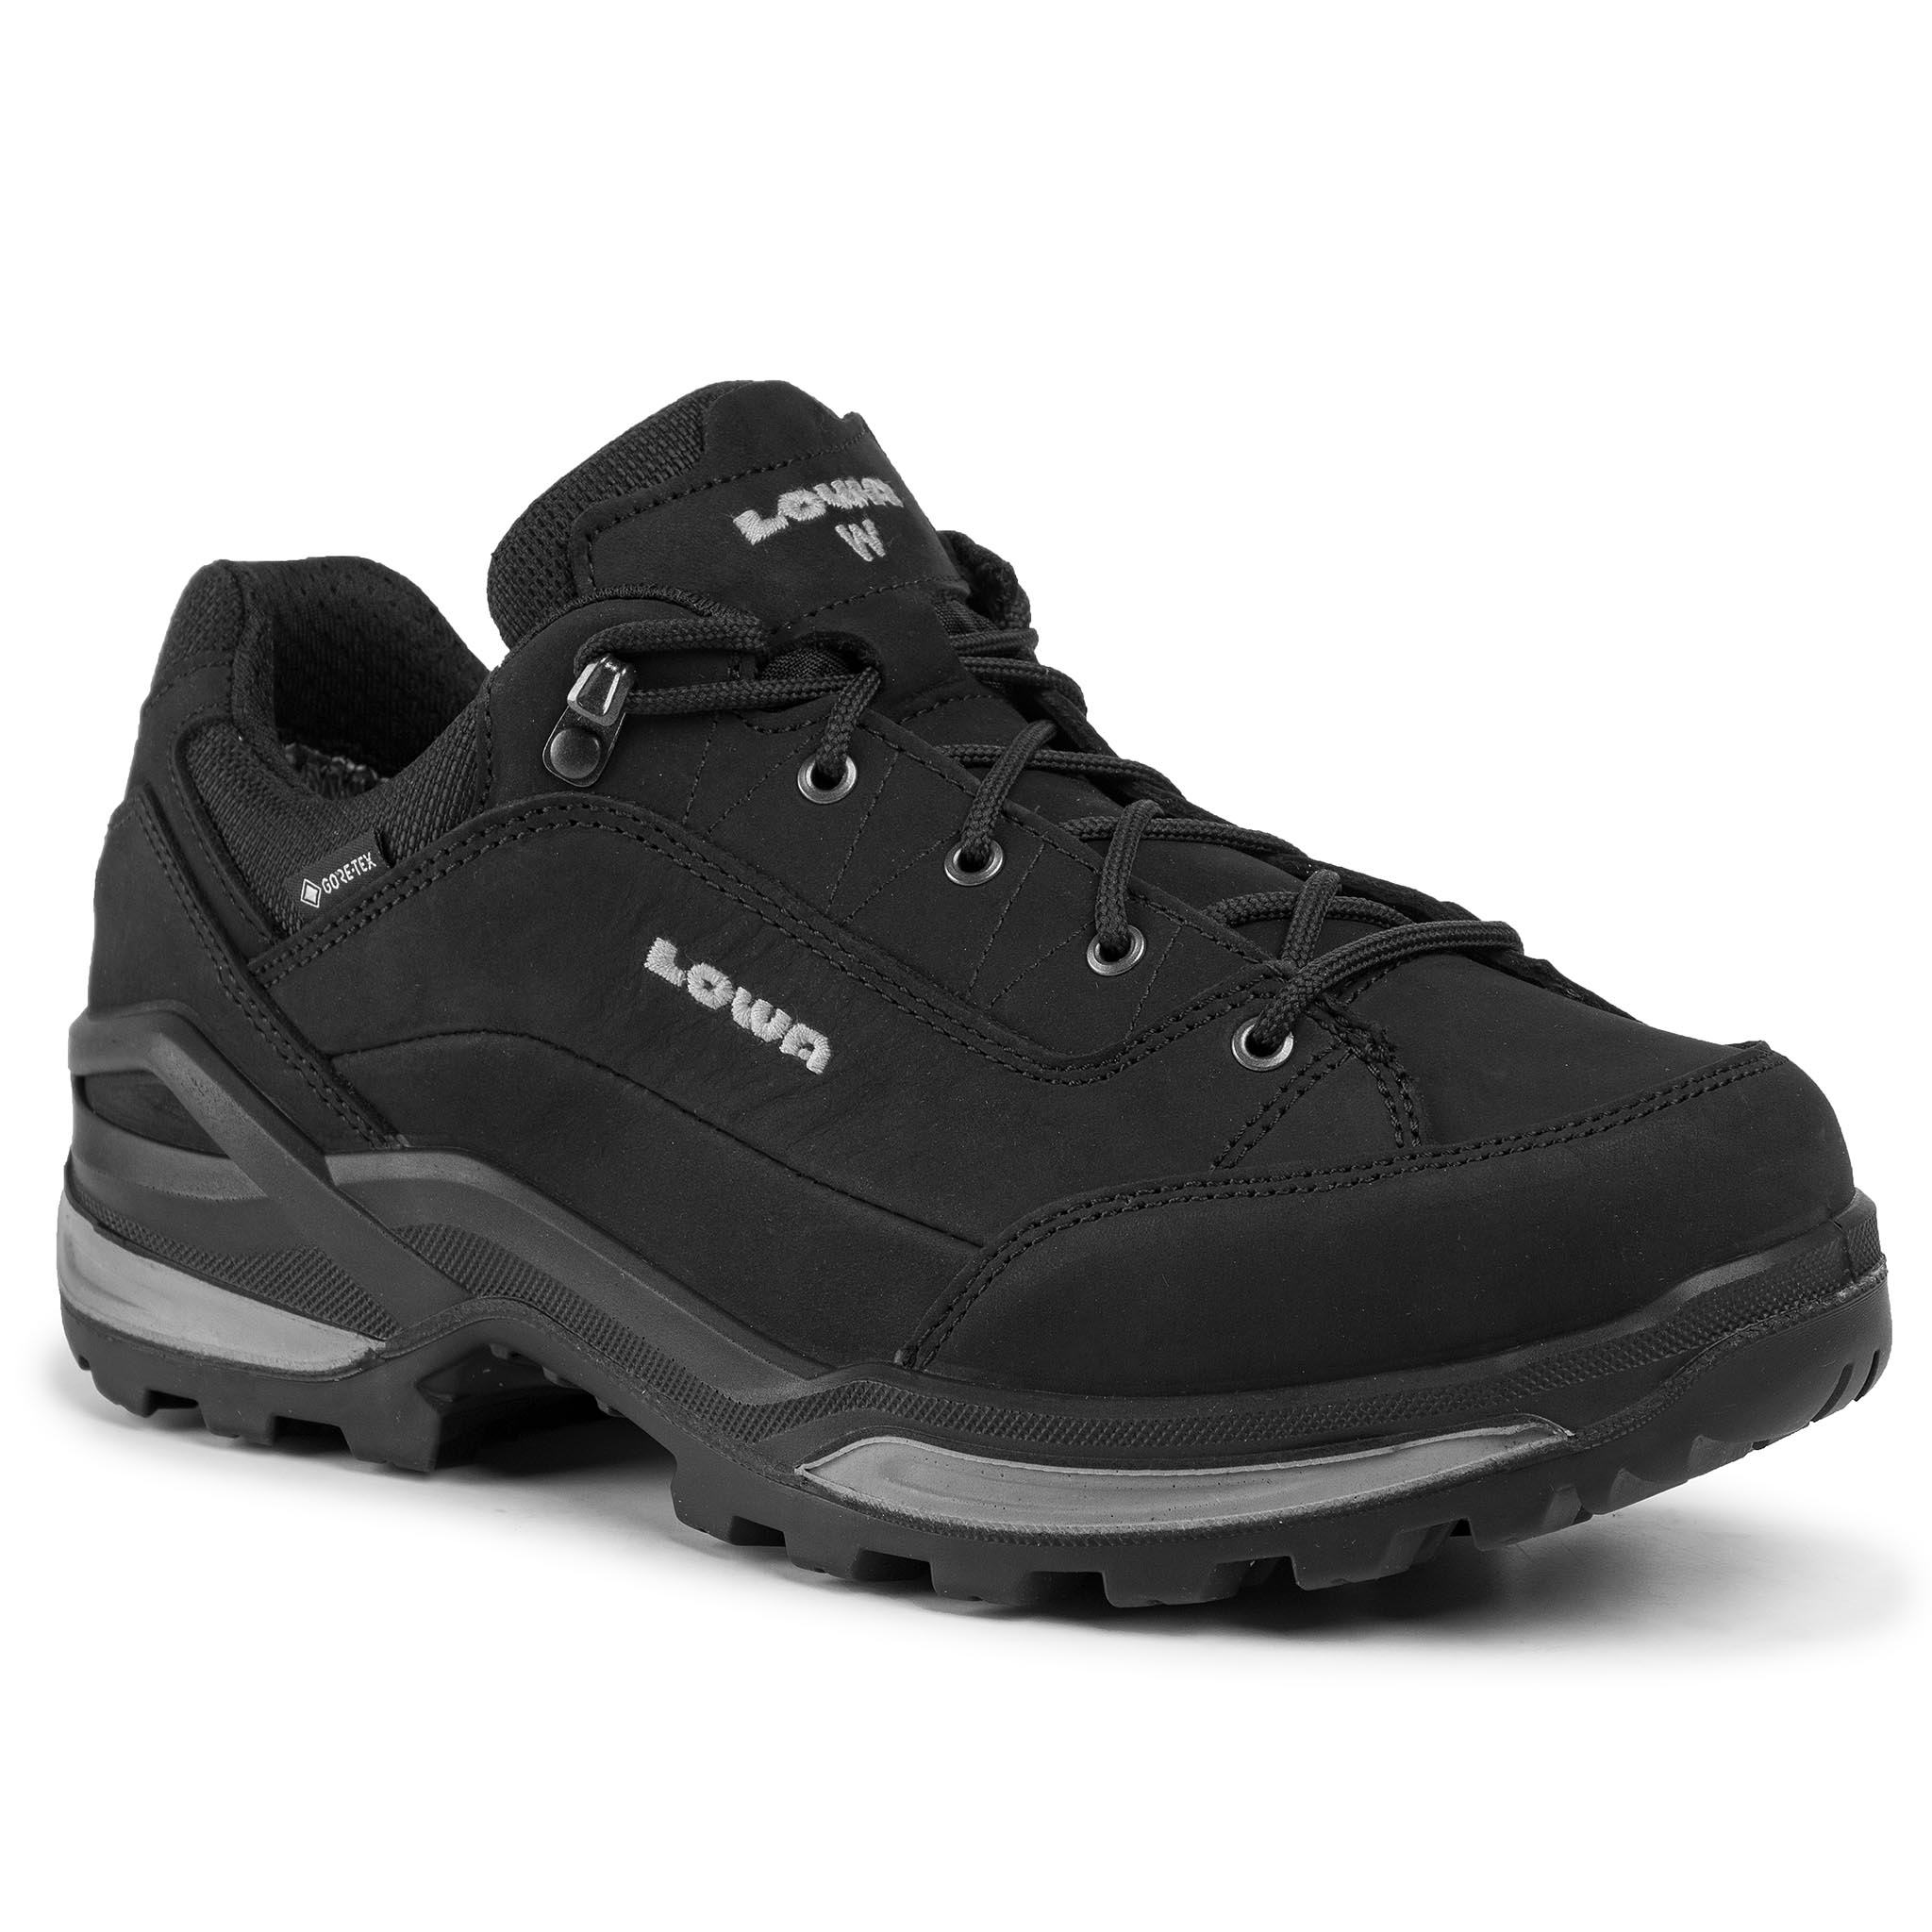 Trekkings LOWA - Renegade Gtx Lo Wide GORE-TEX 310967 Black/Graphite 9927